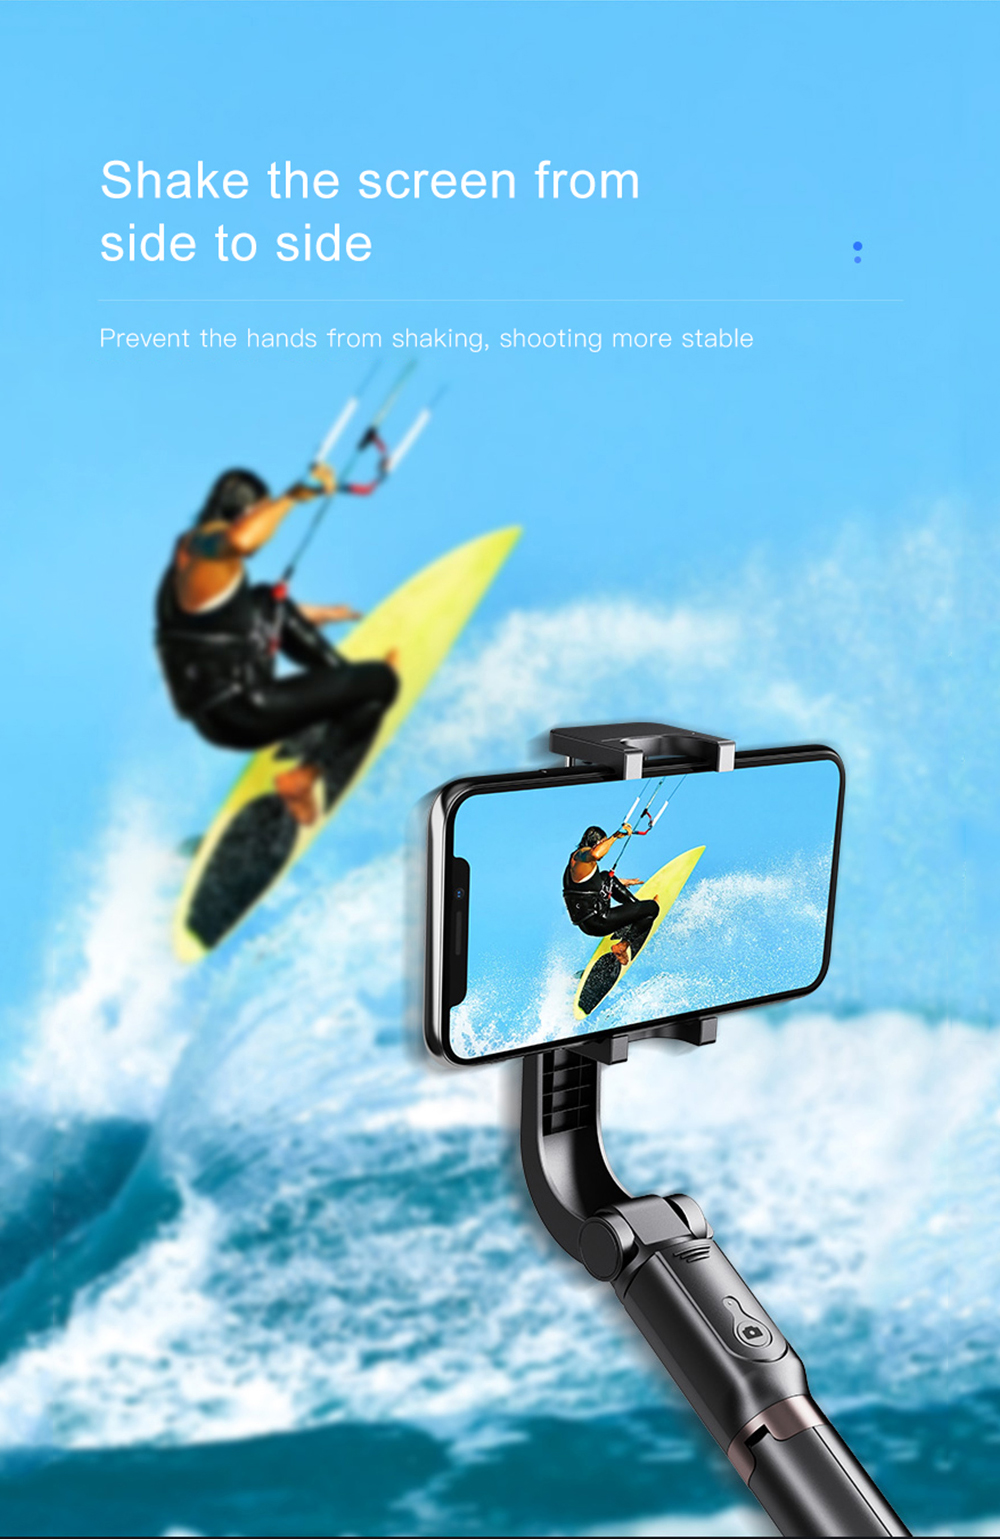 Bonola 3 in1 Handheld Gimbal Stabilizer Smartphone Selfie Stick Tripod For iOSAndroid Video Stabilizer For iPhone11ProSamsung (3)